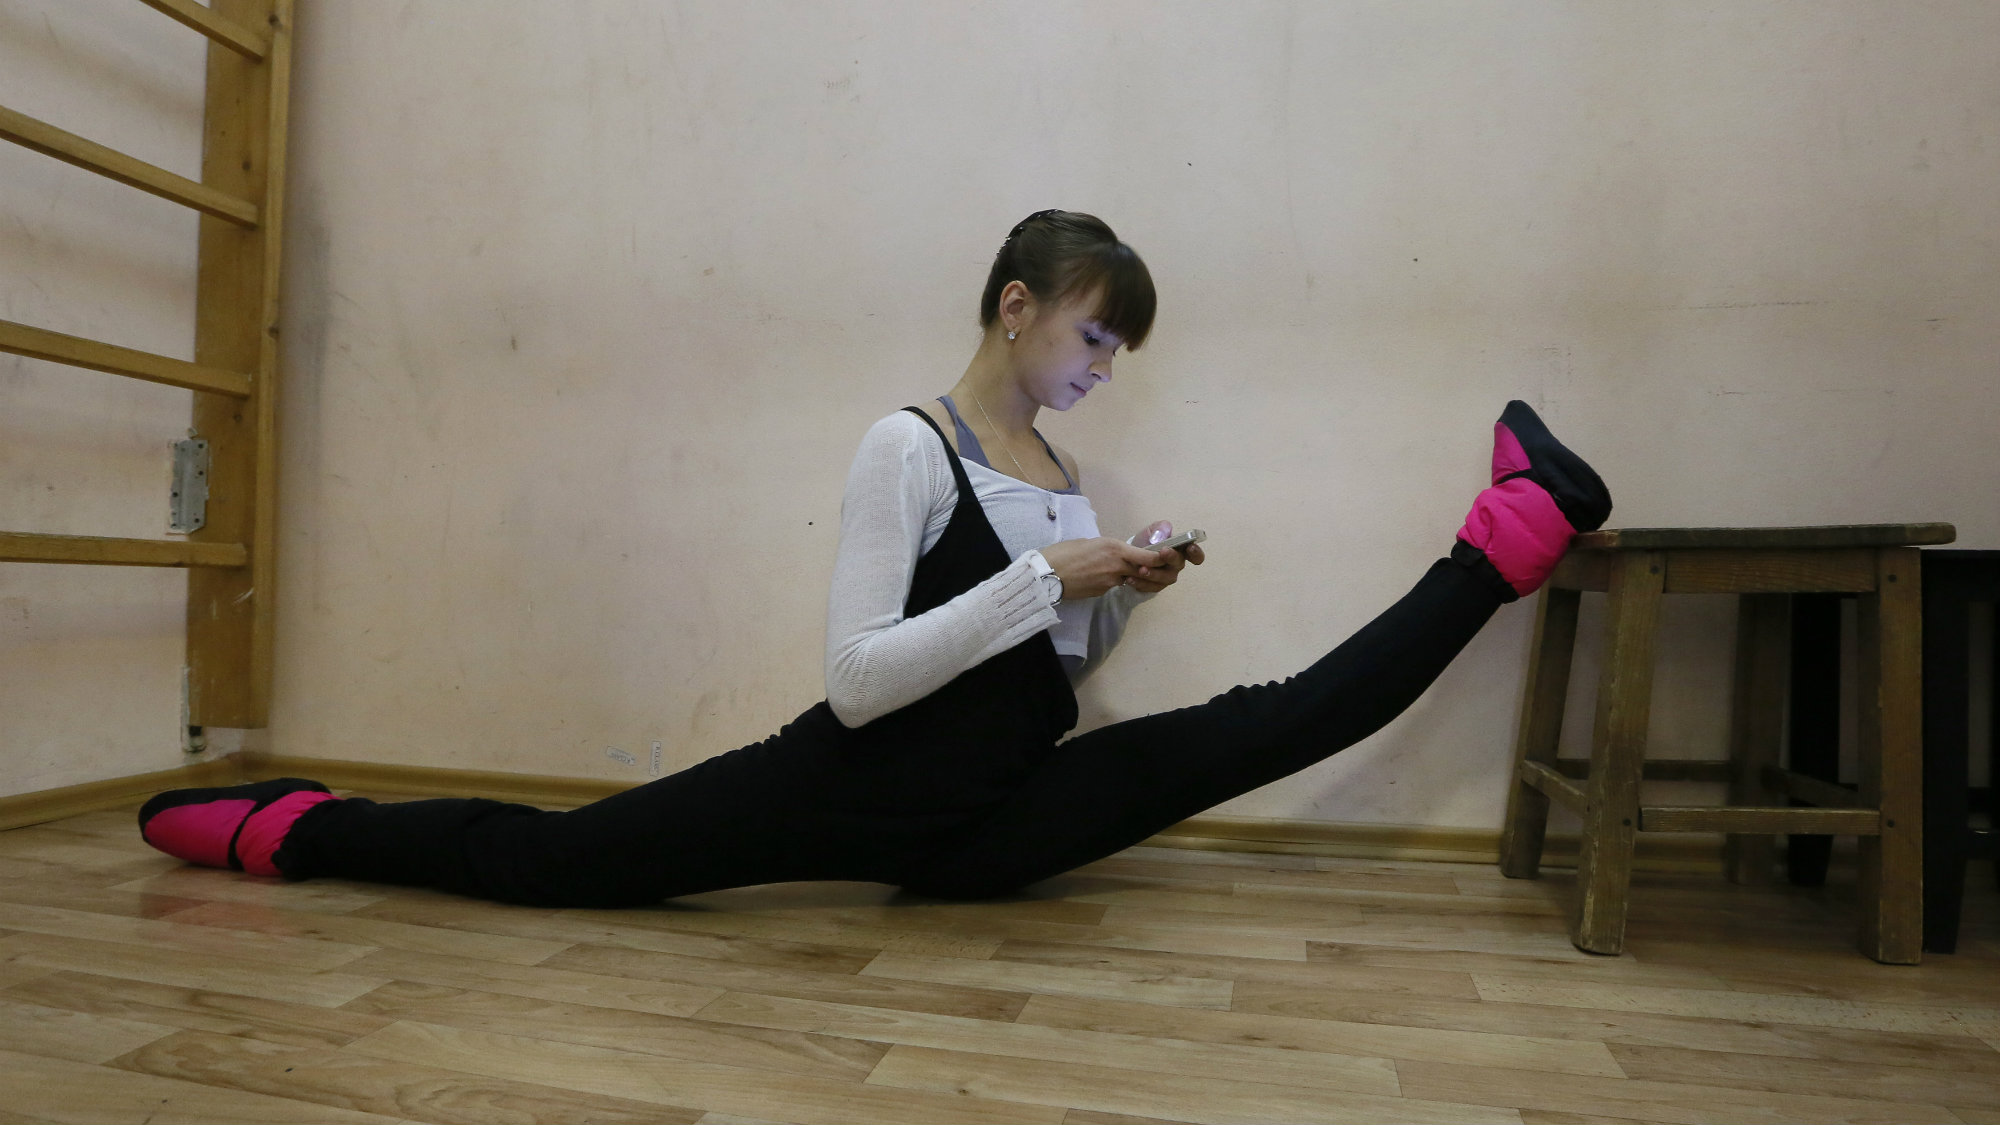 A ballet dancer uses her smartphone as she stretches backstage before her performance.